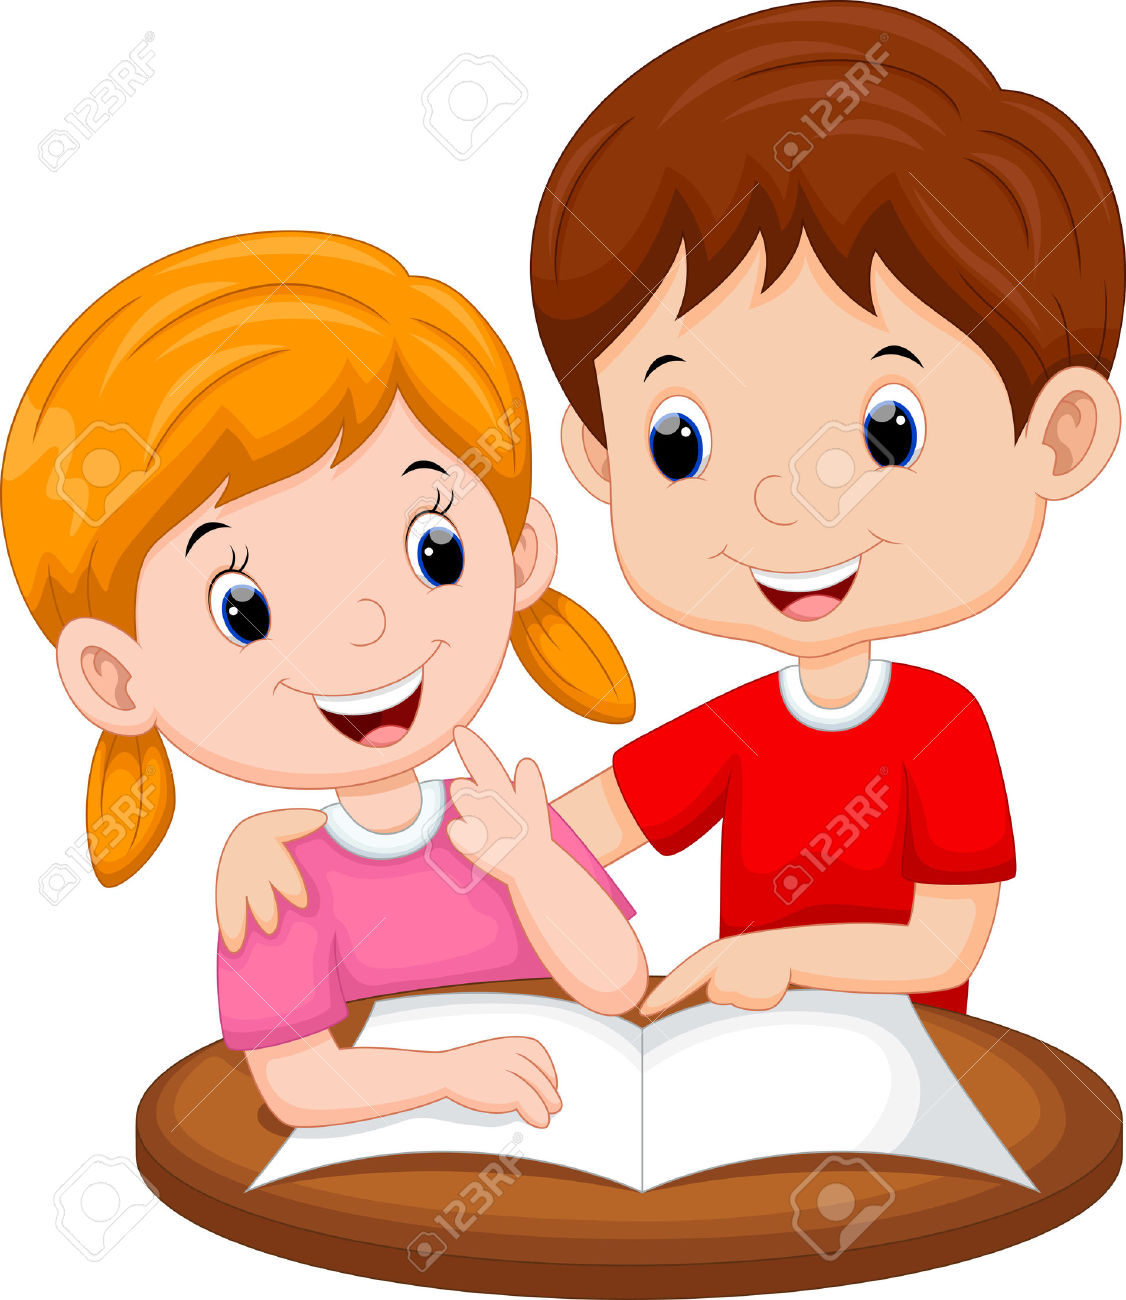 Boy turning in assignment to teacher clipart clip art transparent Teaching Sister Cartoon Royalty Free Cliparts, Vectors, And Stock ... clip art transparent